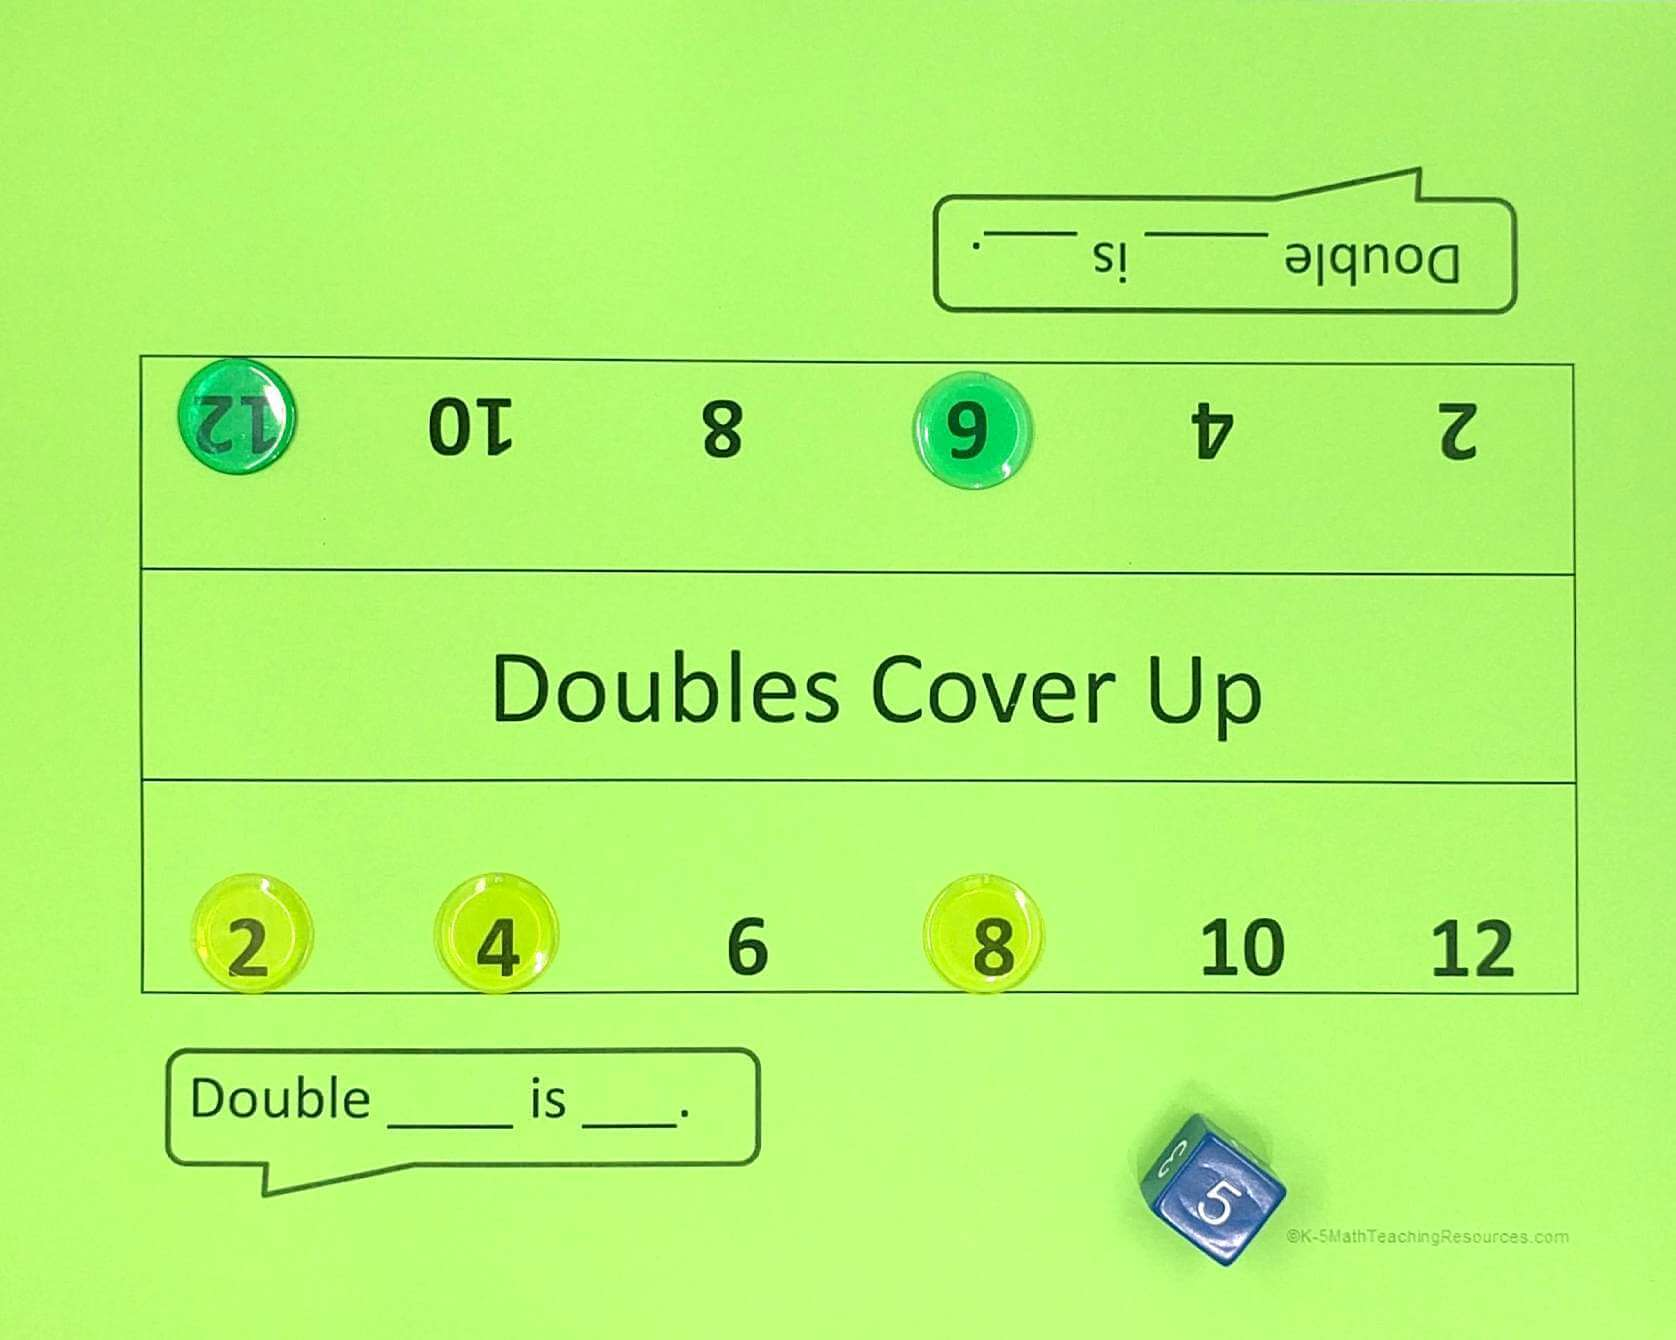 Play Doubles Cover Up (ver.1) to build fluency with doubles facts 1+1 - 6+6